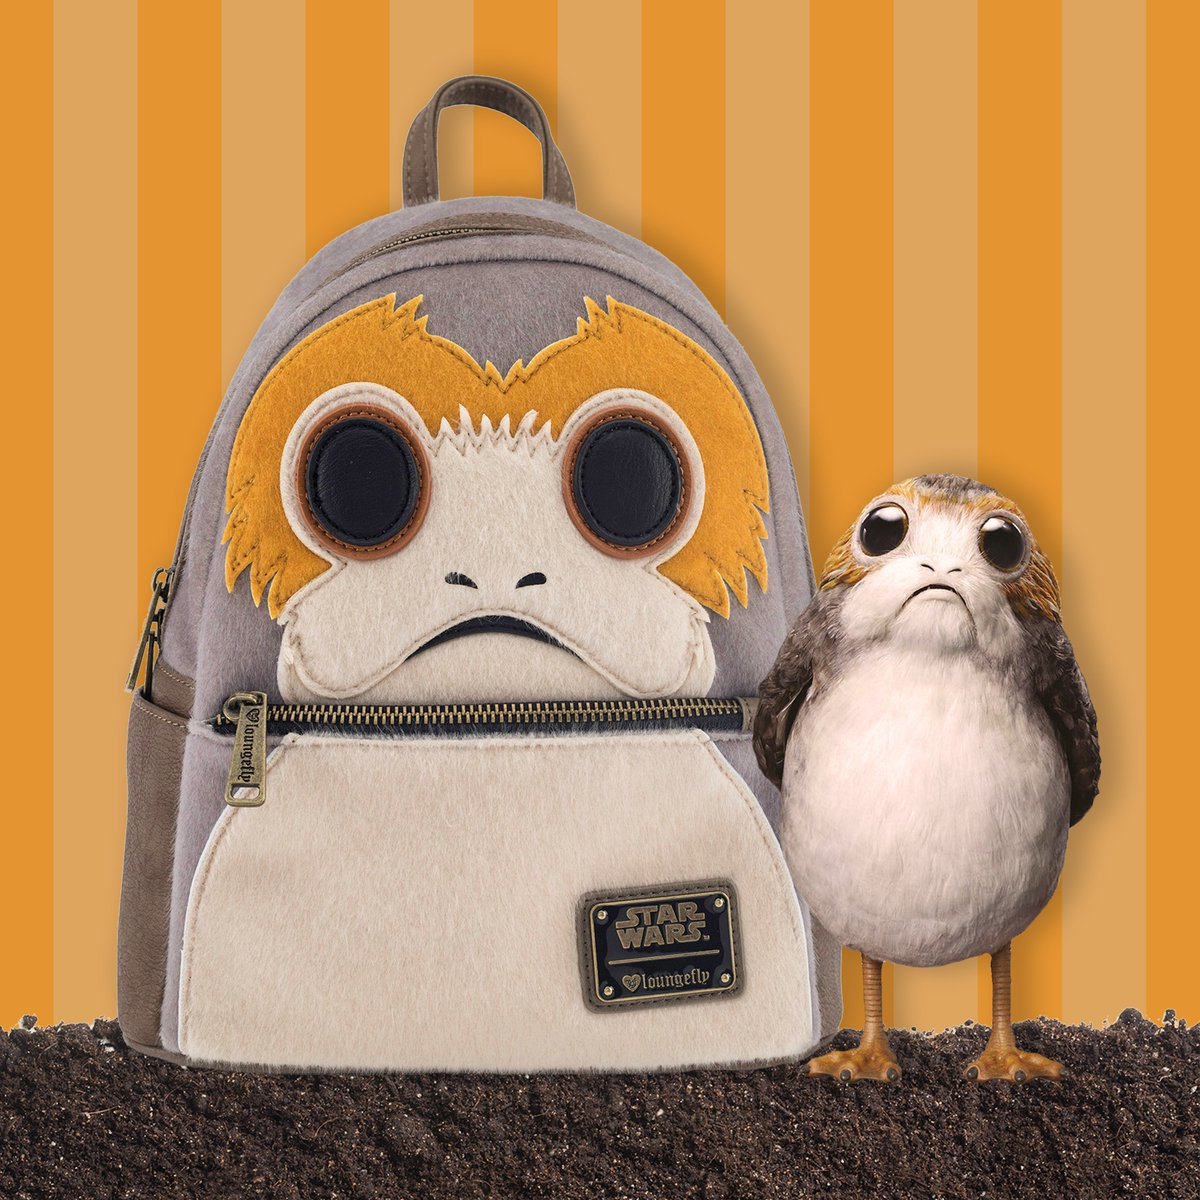 Find this @StarWars Porg mini backpack at our #SDCC2018 booth #5346! #LoungeflySDCC<br>http://pic.twitter.com/uS0074Nhsi